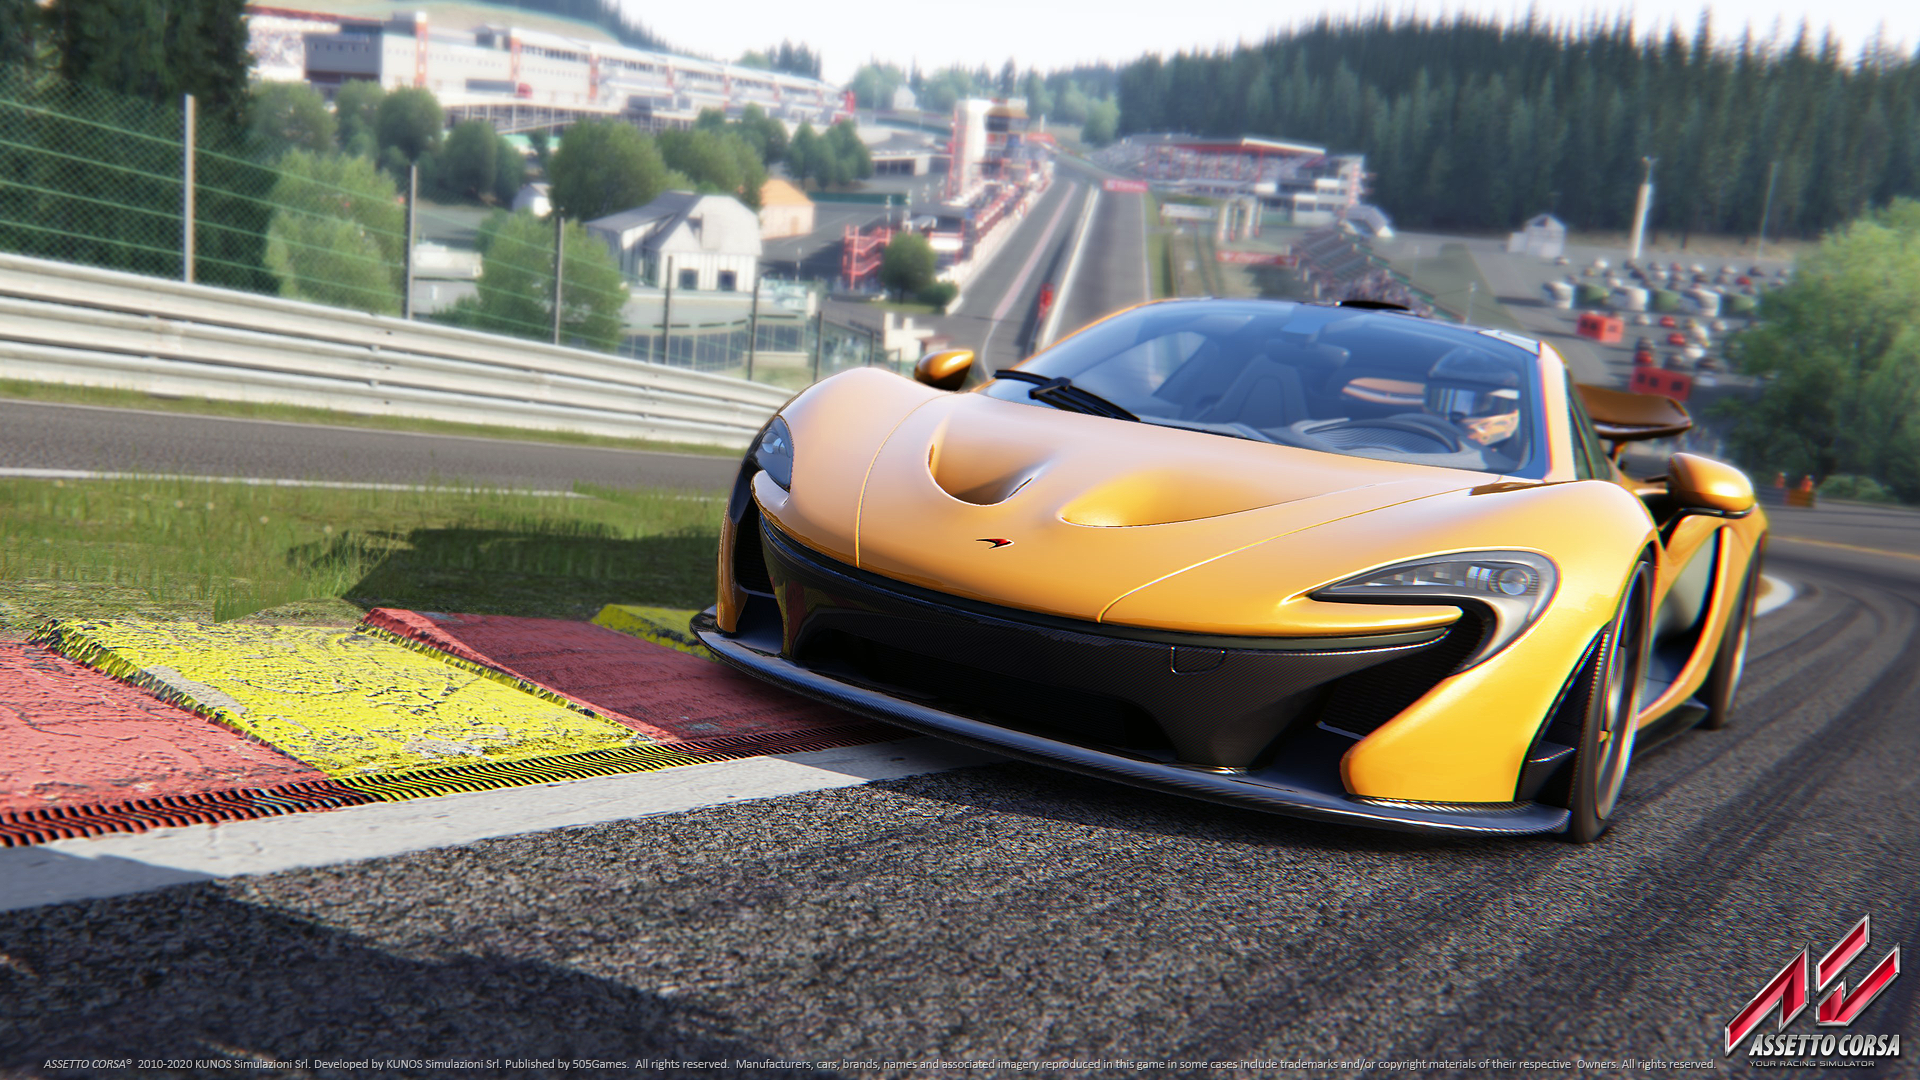 Assetto Corsa Review - Gaming Respawn